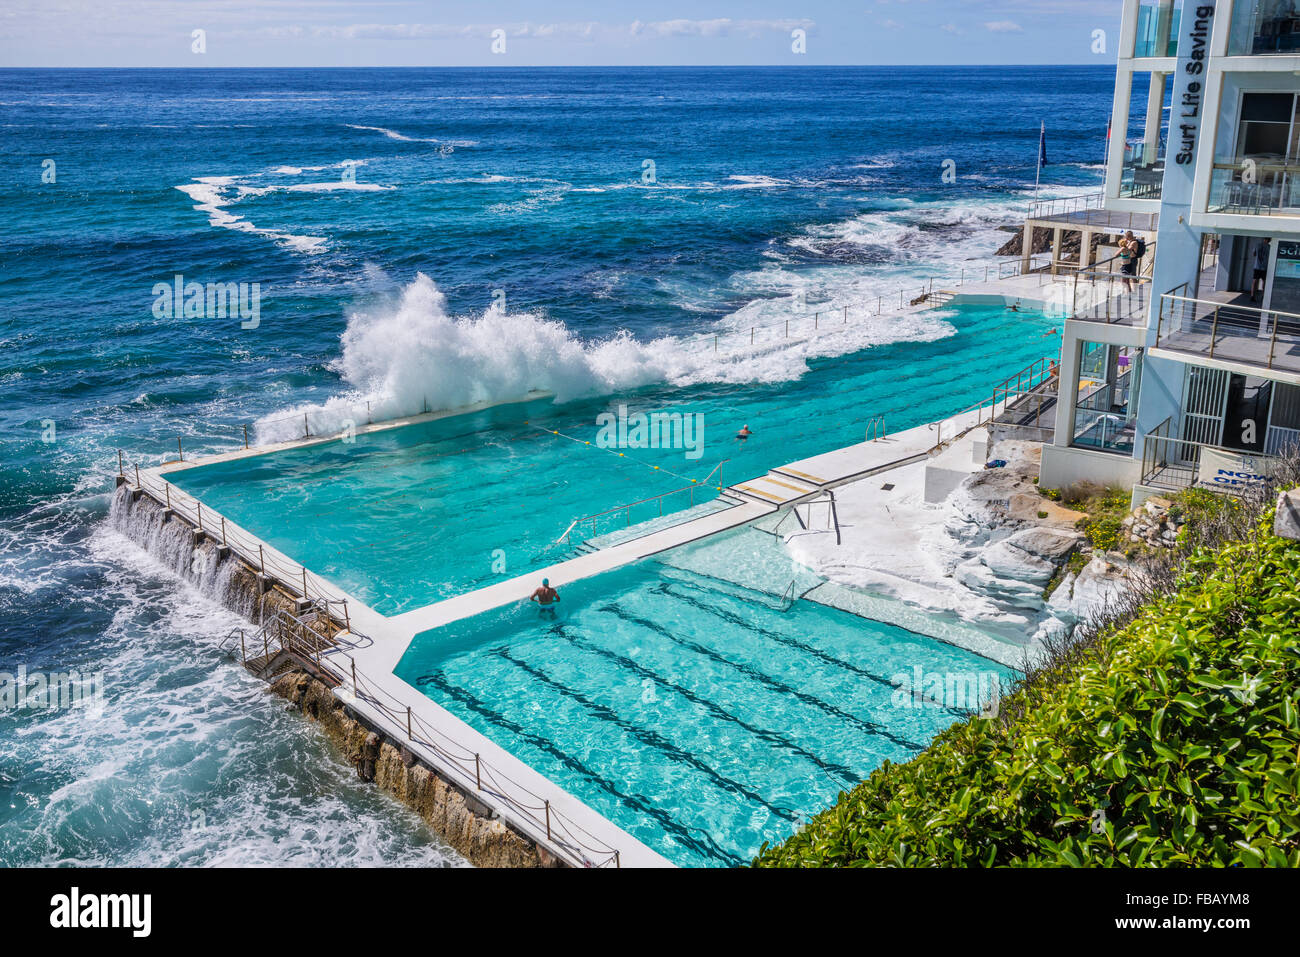 waves crashing into the swimming pool of the Bondi Icebers